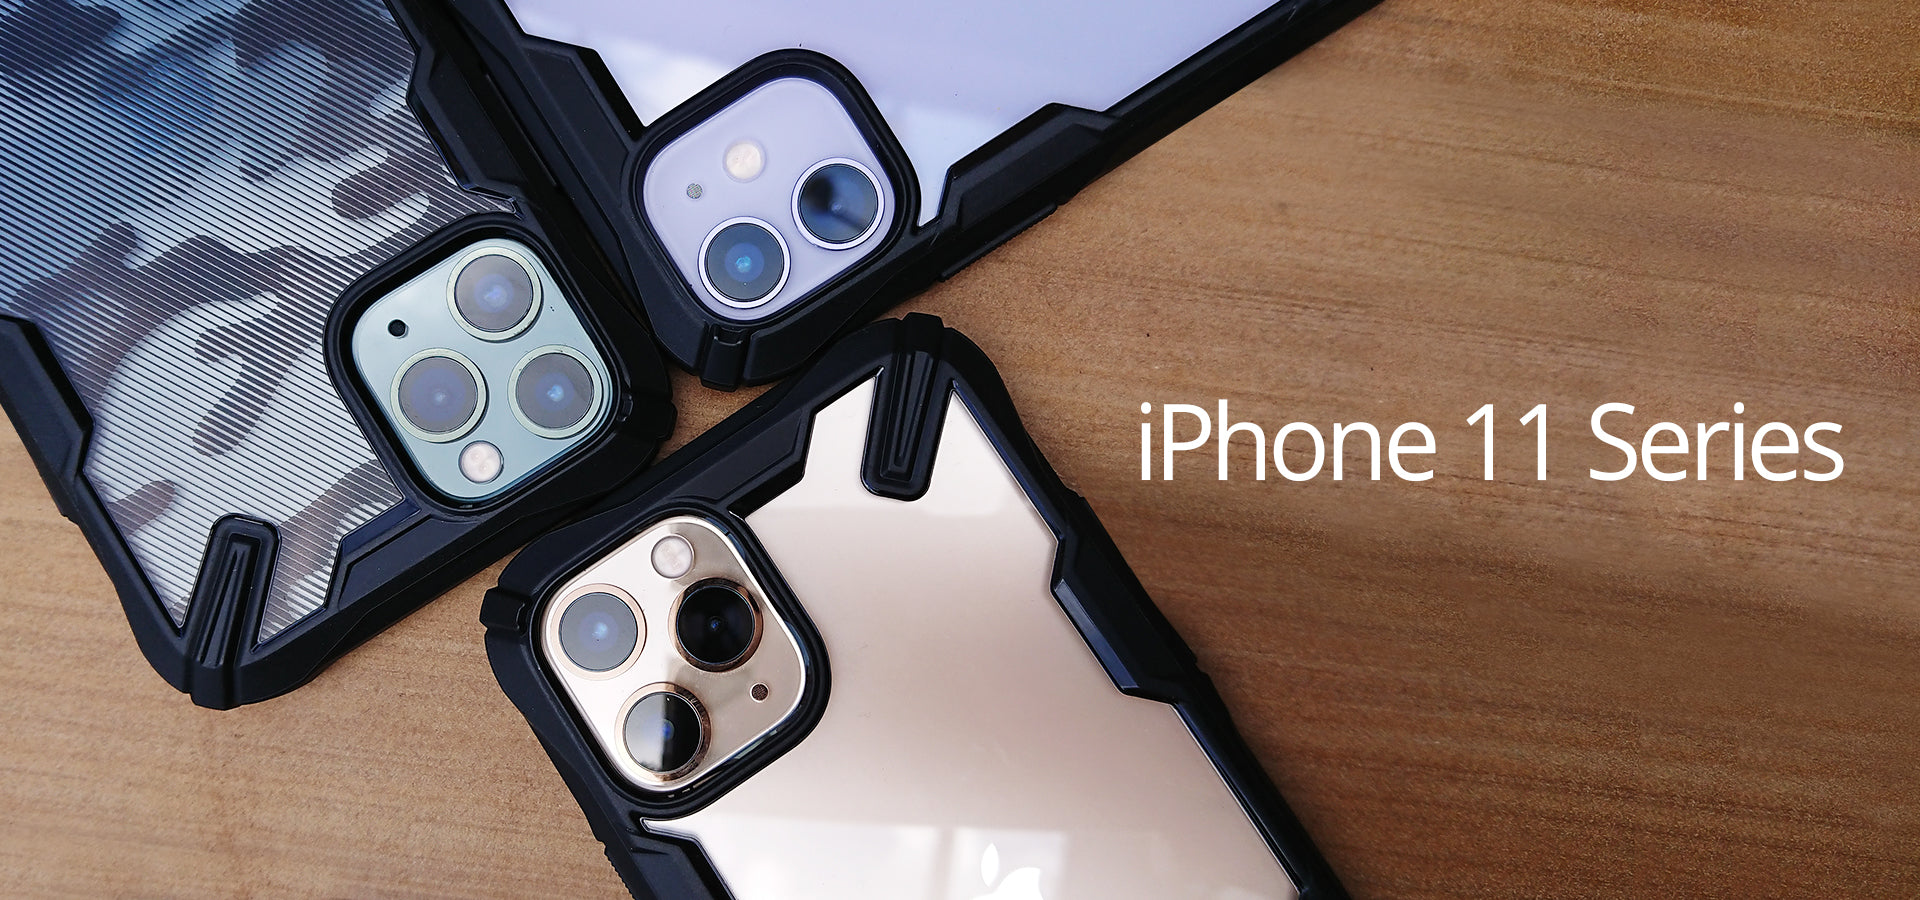 ringke case collection for iphone 11 series